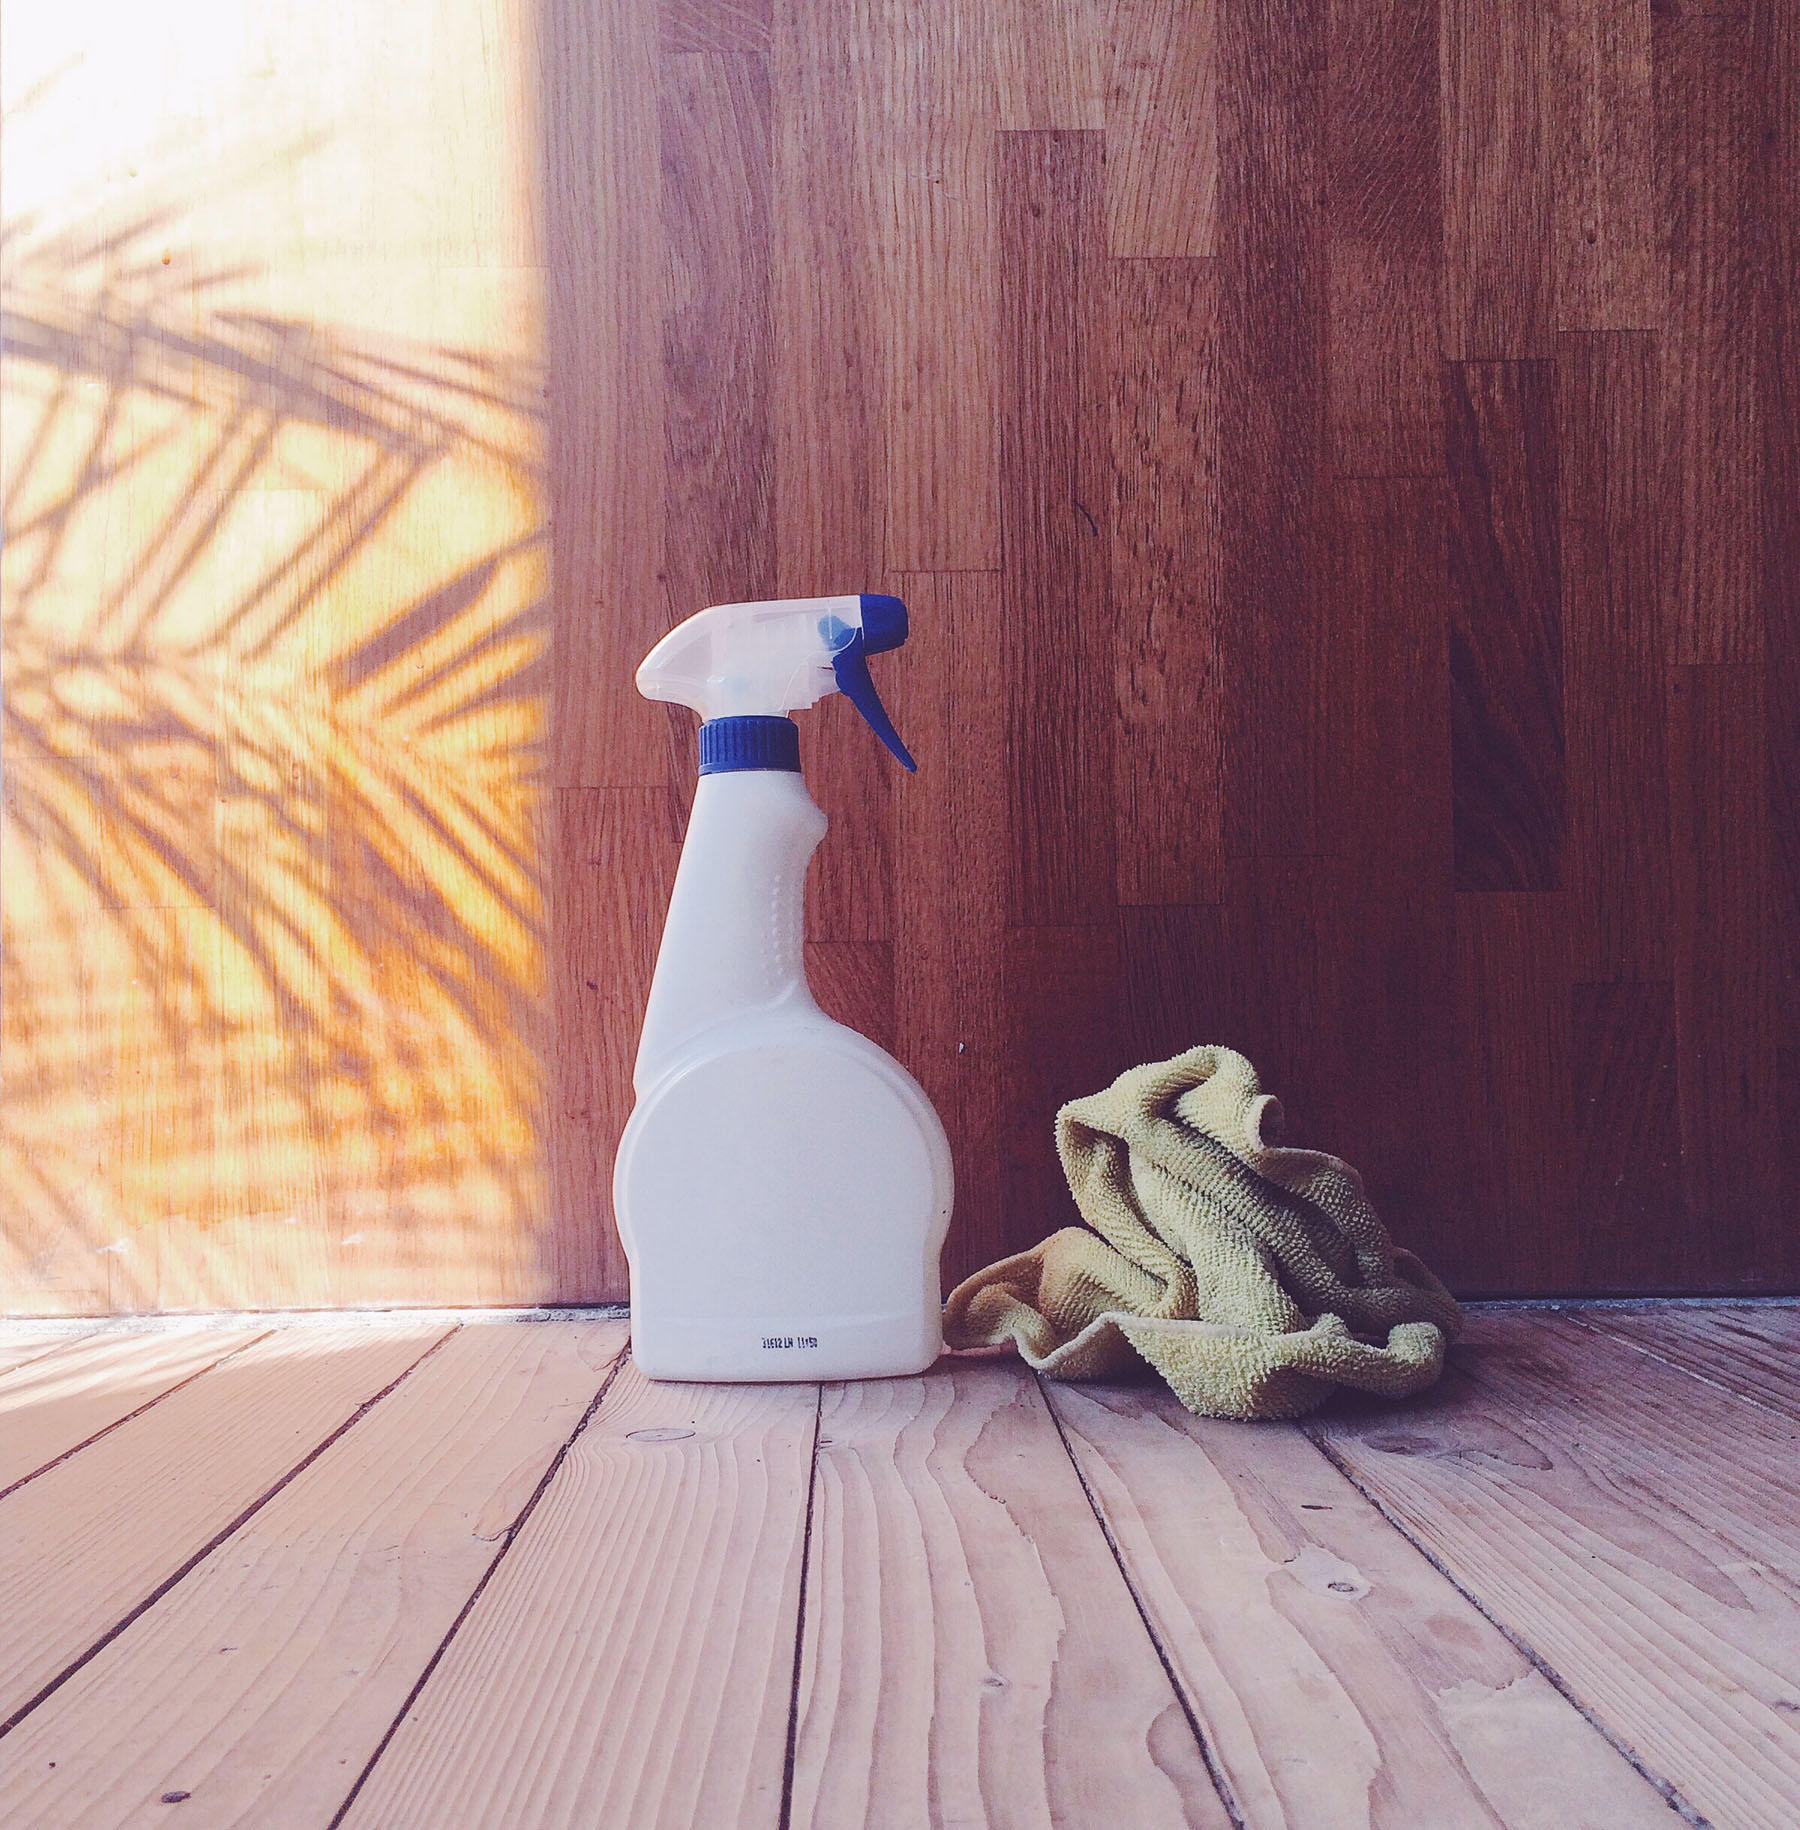 Rethinking Clean: 5 Ways to Detox your Household Cleaners